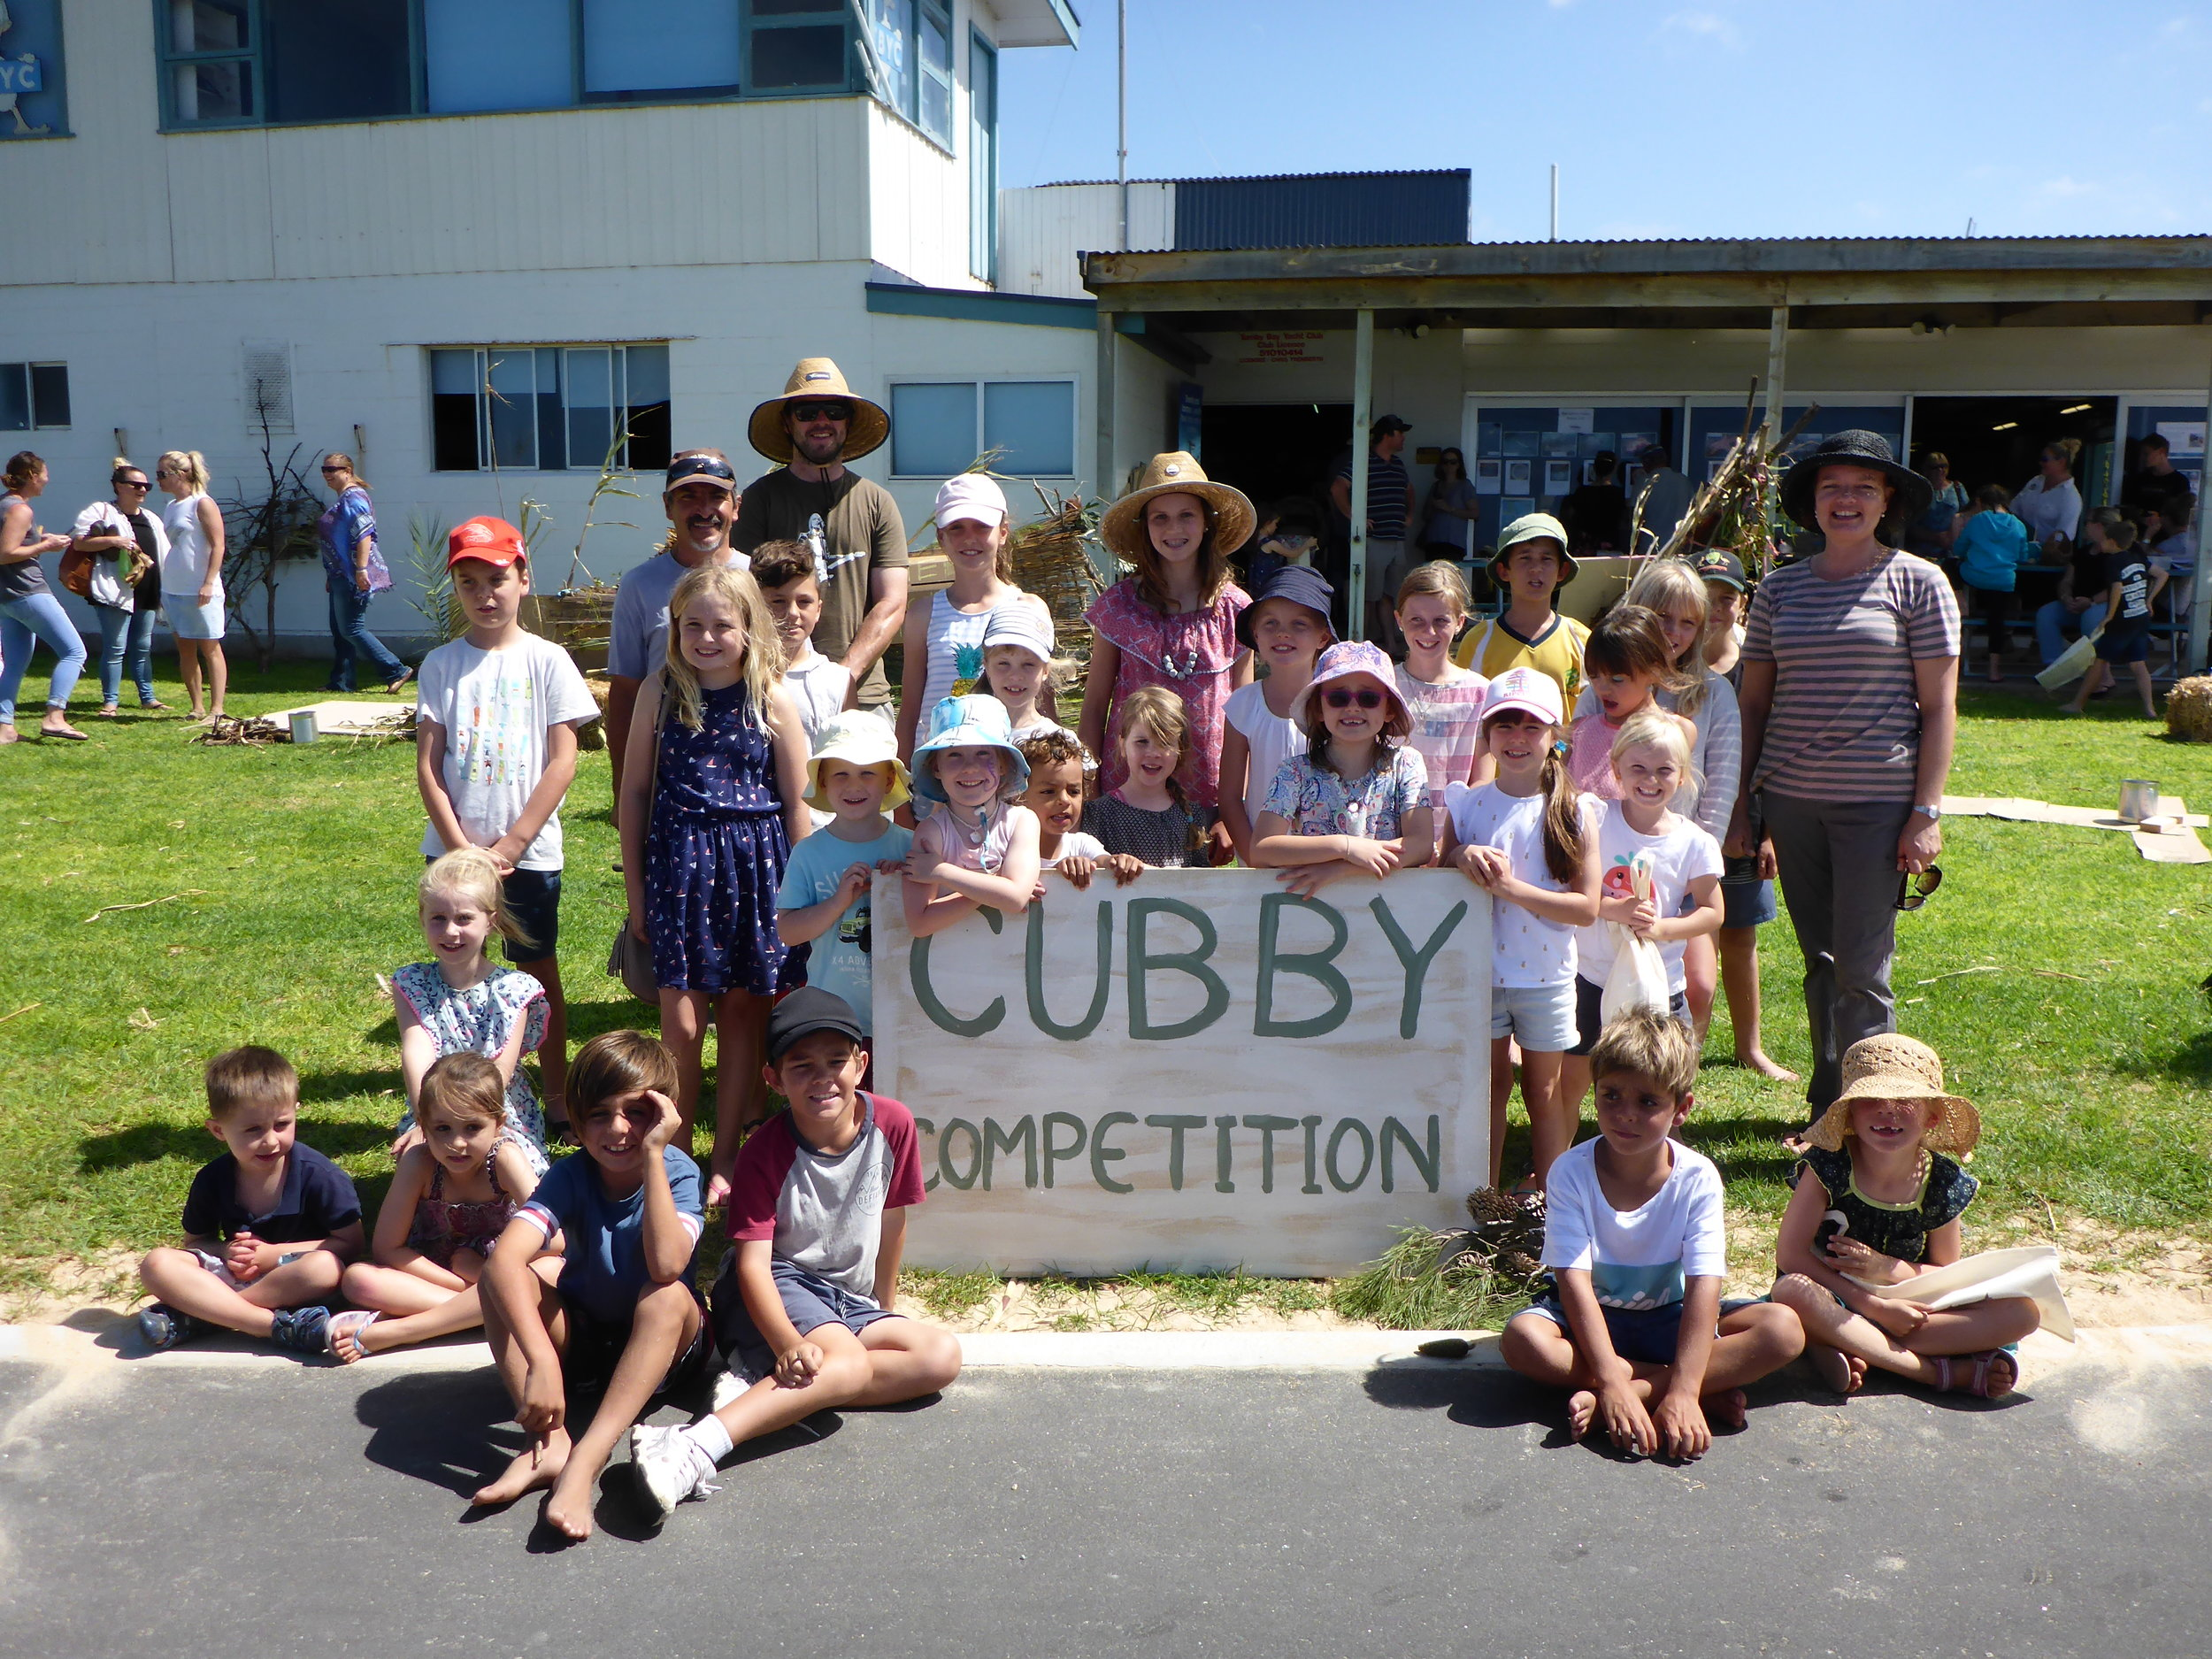 Tumby Bay Cubby Competition - On 12 March 2018, the annual 'Tumby Market @ the Bay' took place on Eyre Peninsula. However, instead of the usual bouncy castle, long line-ups for face painting, and sugary drinks, the organisers held a cubby building competition for family groups to build a structure on the beach, sponsored by Amongst It.